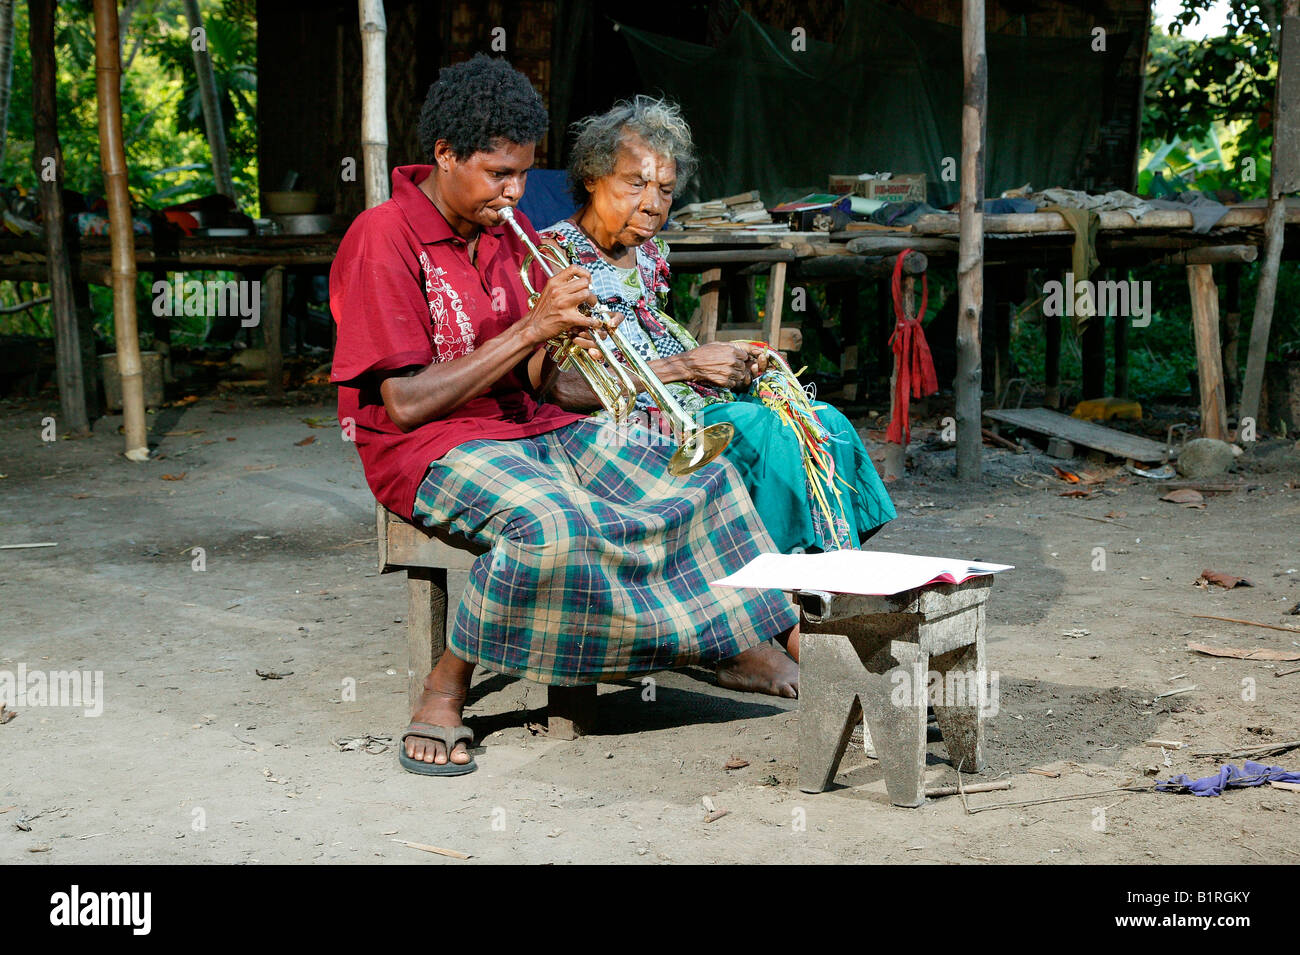 Trumpet player sitting next to an old woman, Heldsbach, Papua New Guinea, Melanesia - Stock Image